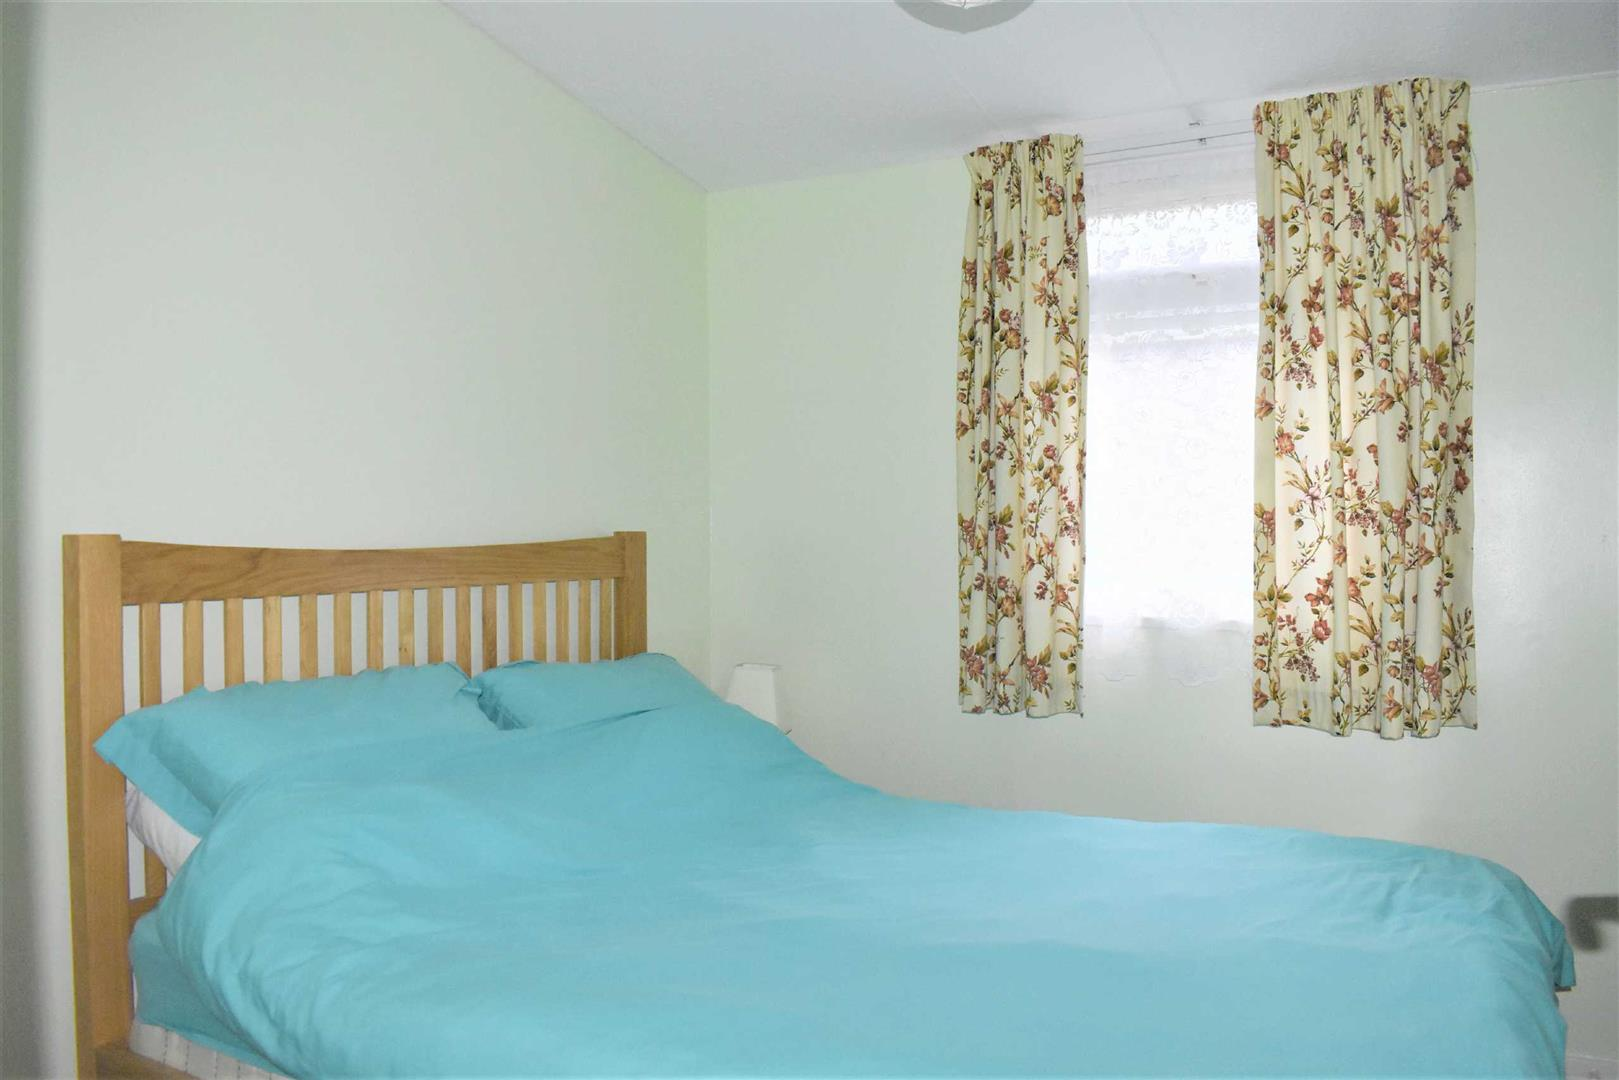 Summercliffe, Caswell, Swansea, SA3 3BR